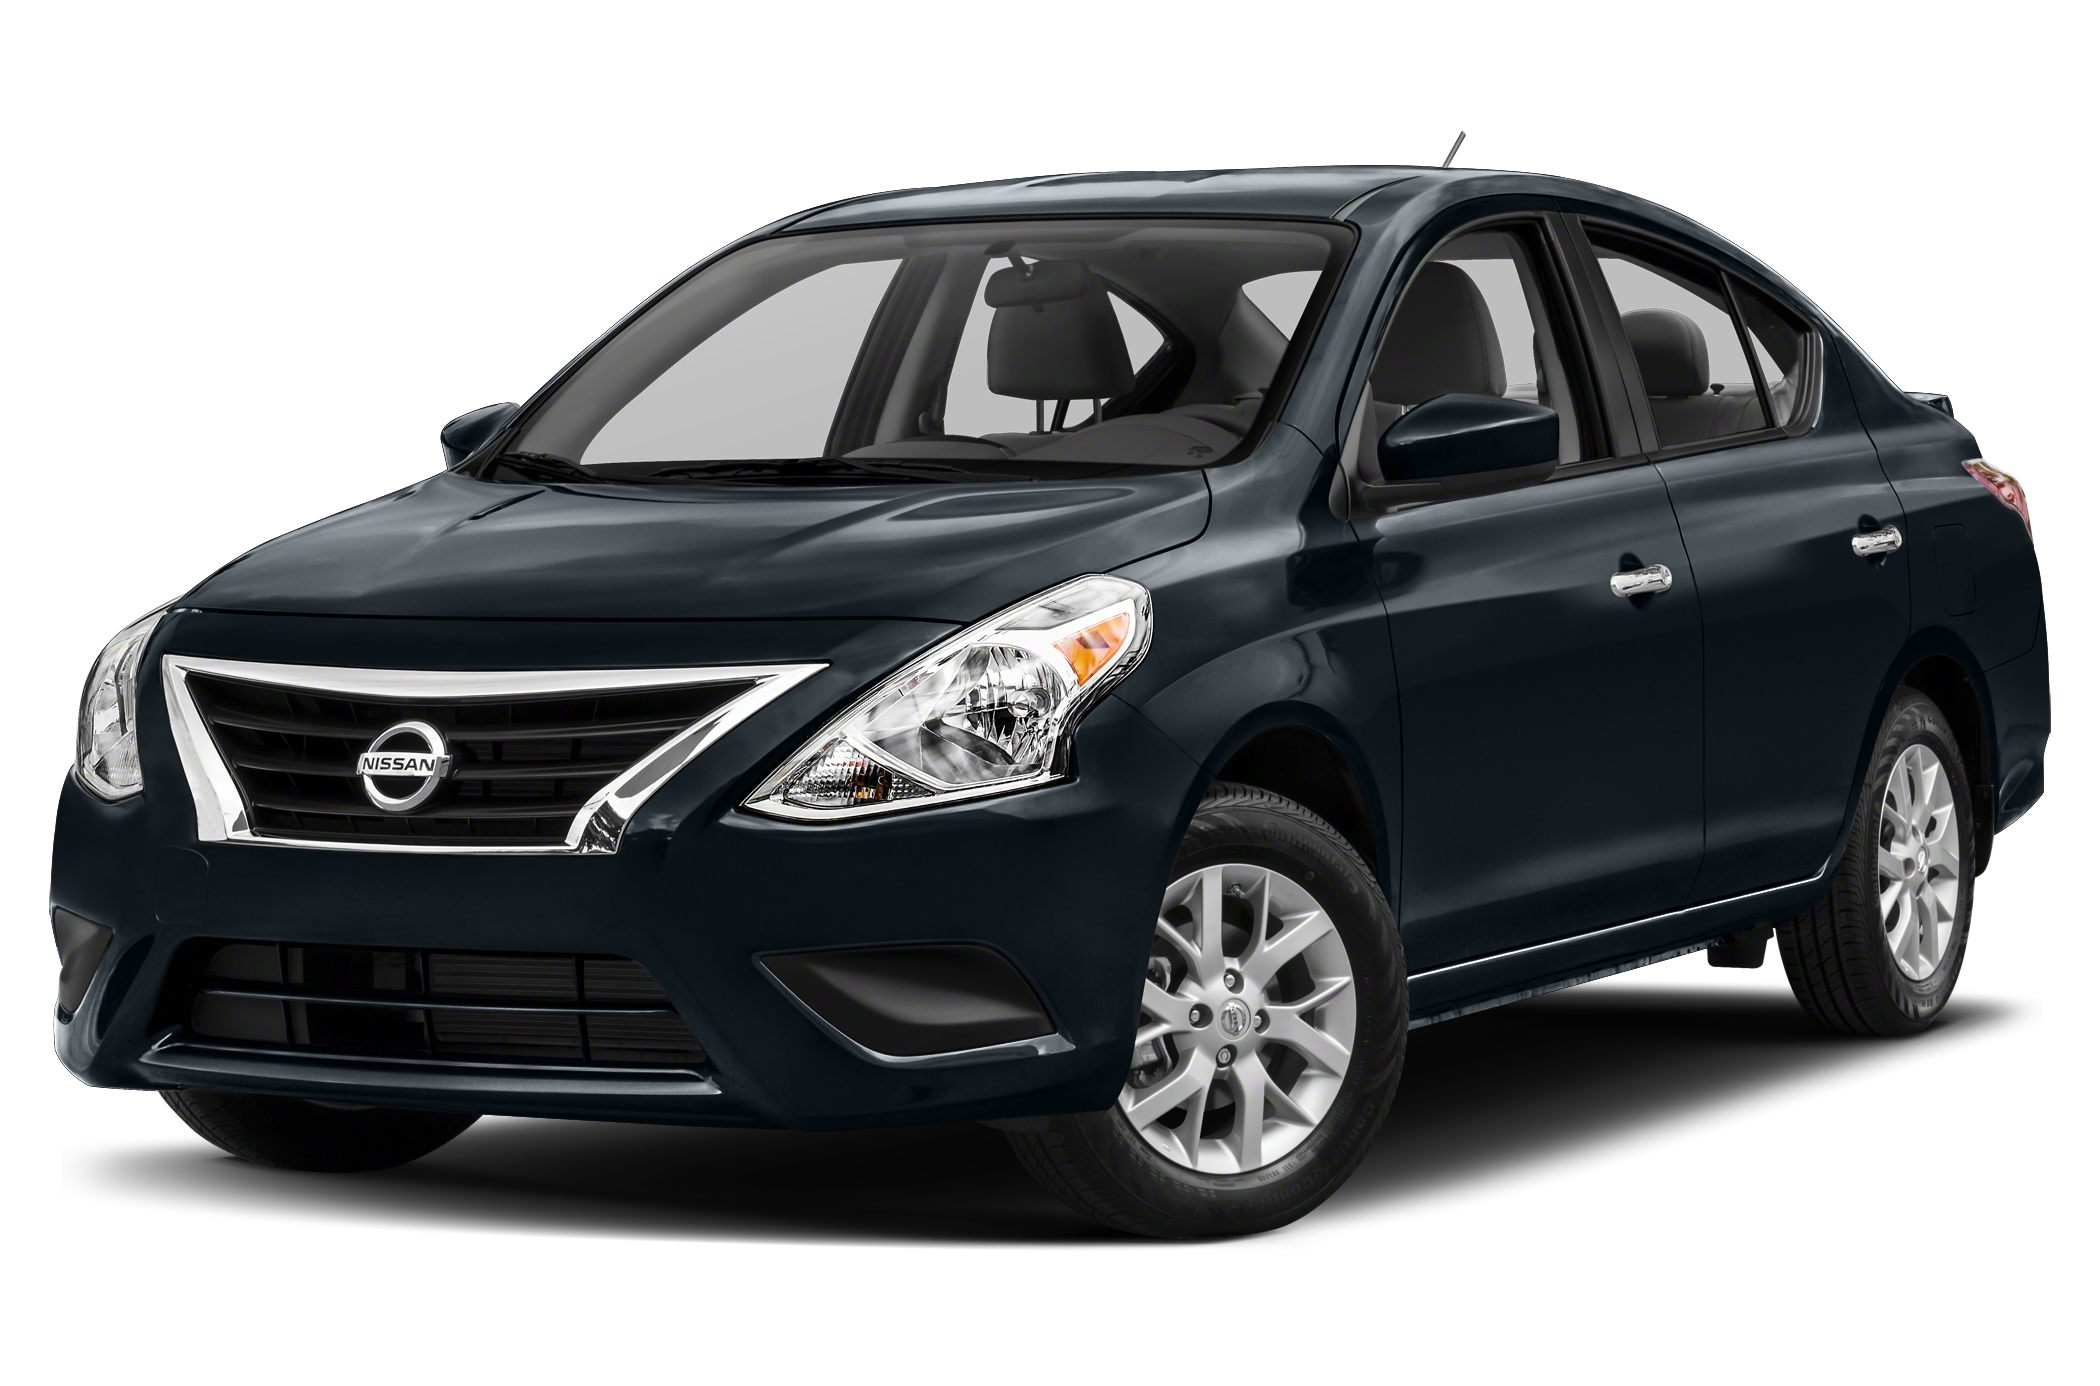 2016 Nissan Versa 16 SV WE OFFER FREE LIFETIME INSPECTION Miles 38158Color Gray Stock P1634